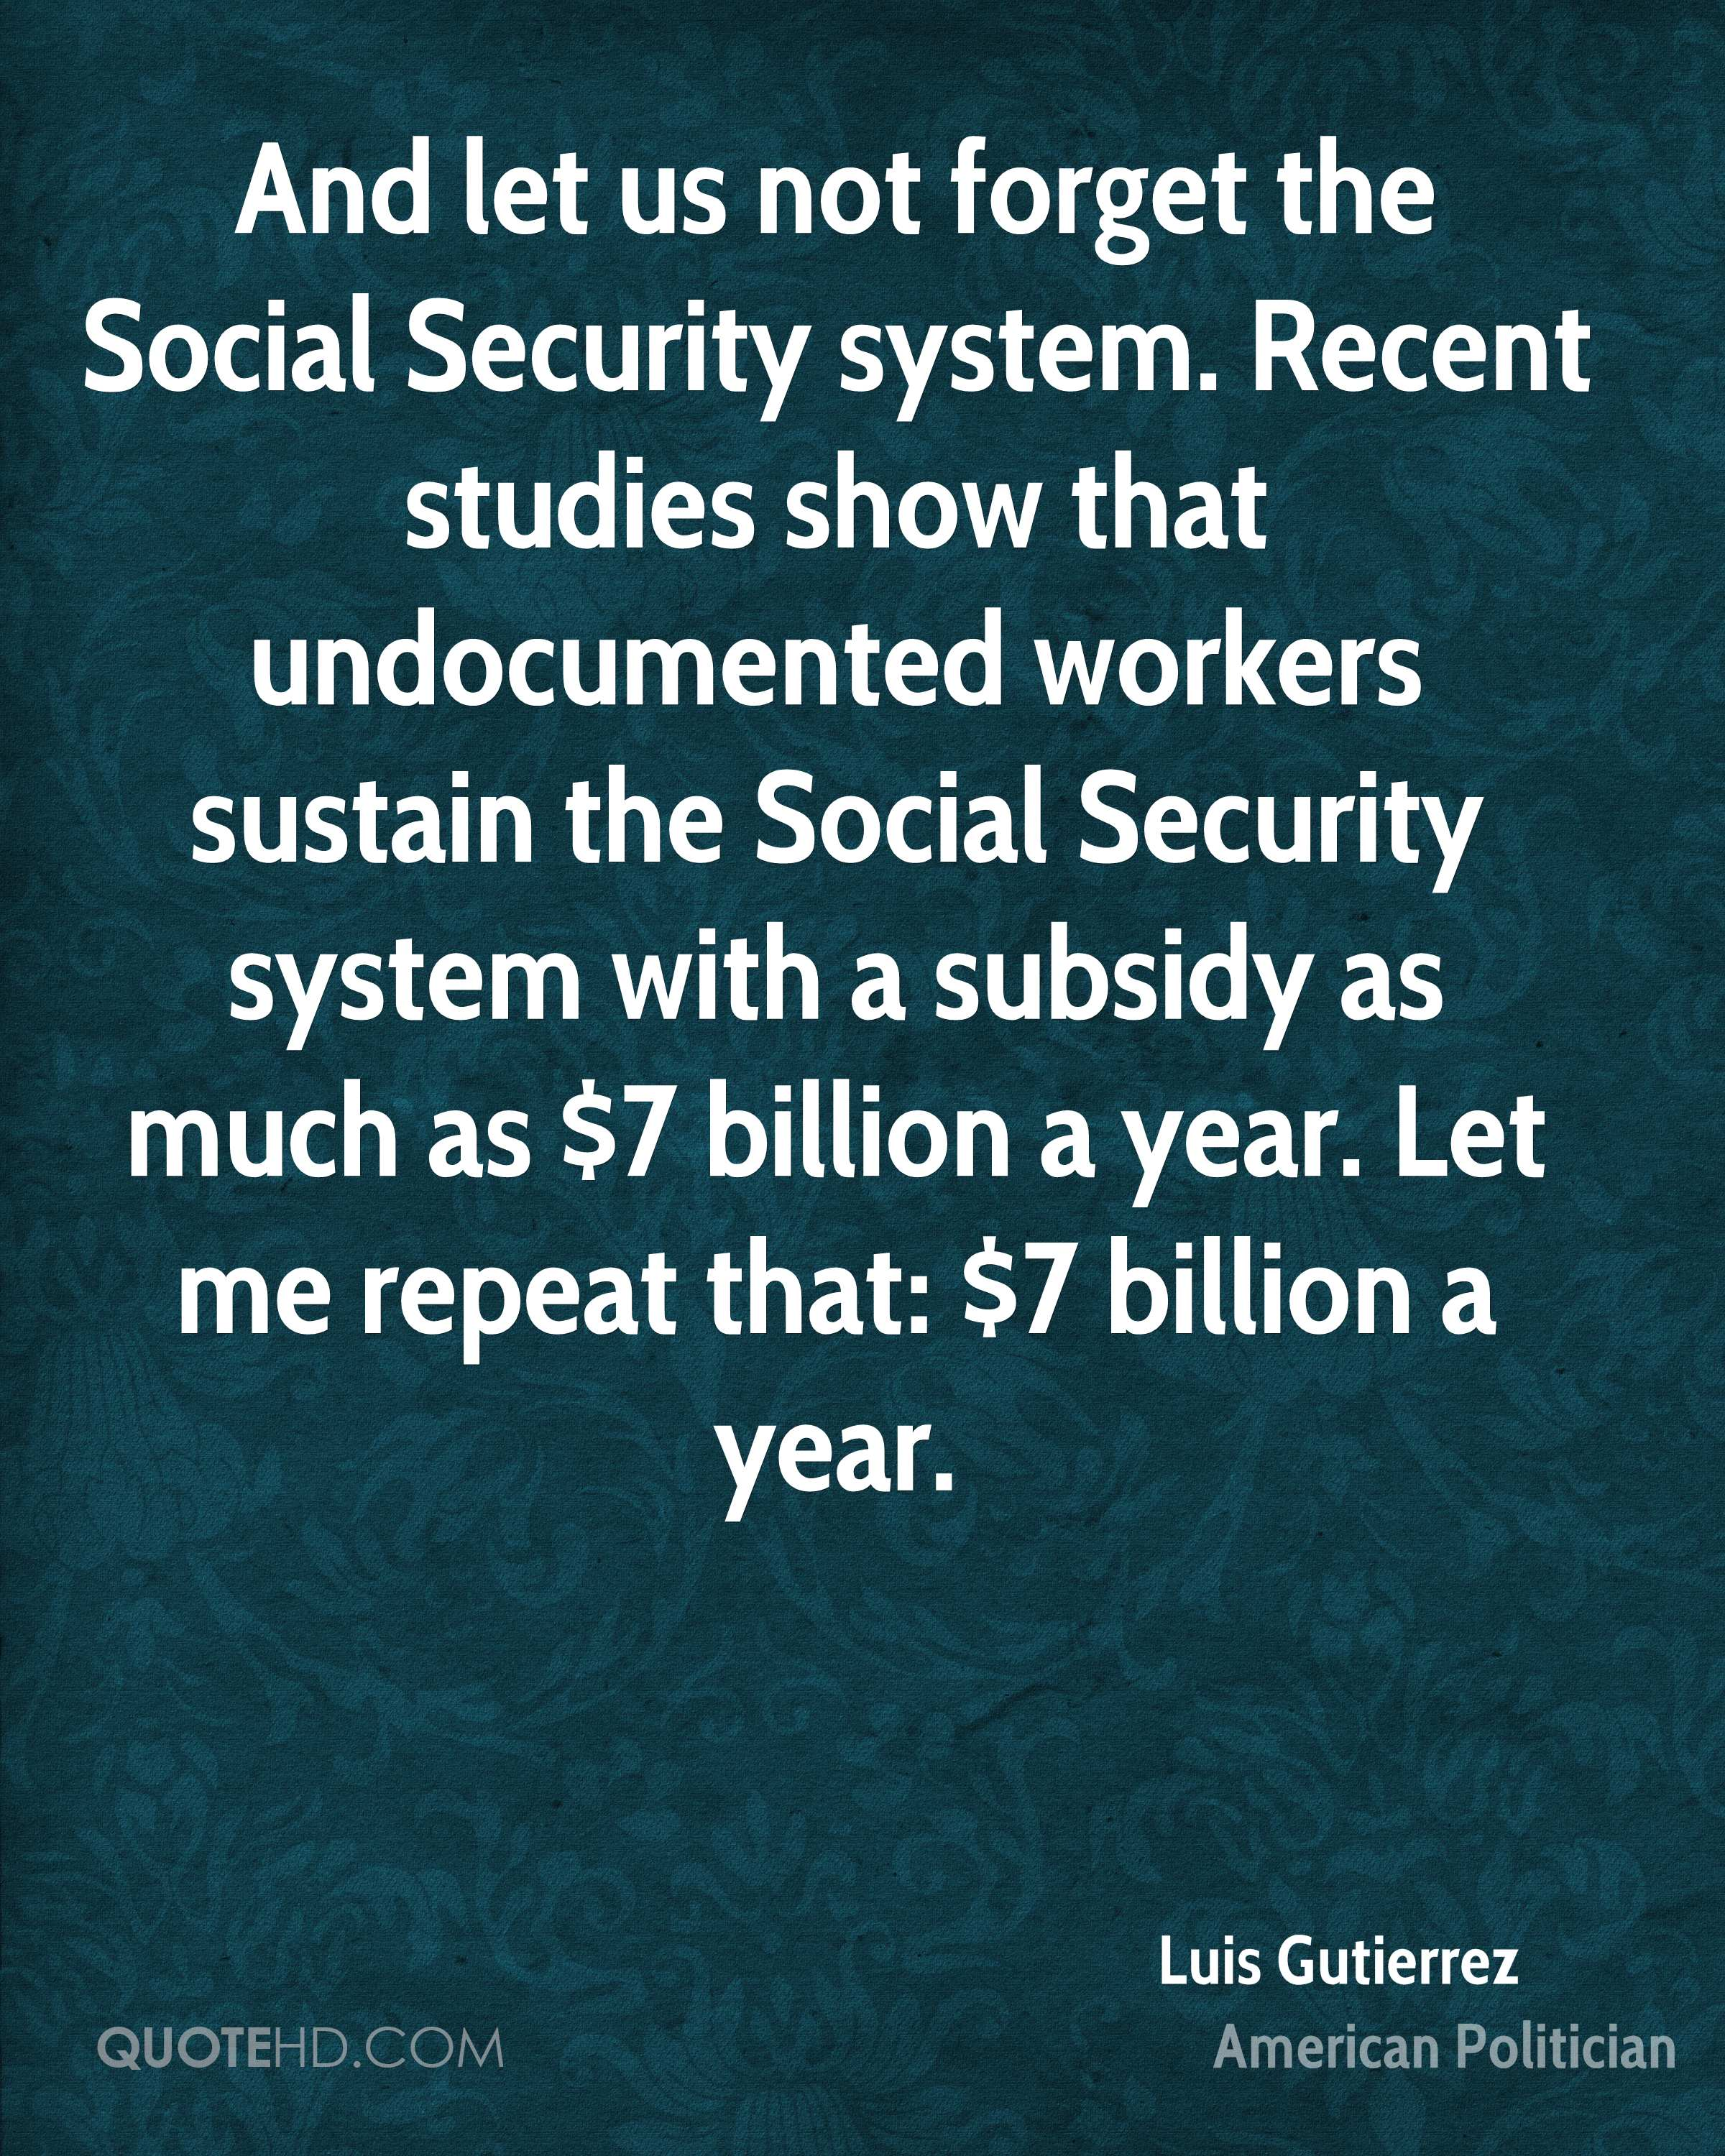 And let us not forget the Social Security system. Recent studies show that undocumented workers sustain the Social Security system with a subsidy as much as $7 billion a year. Let me repeat that: $7 billion a year.